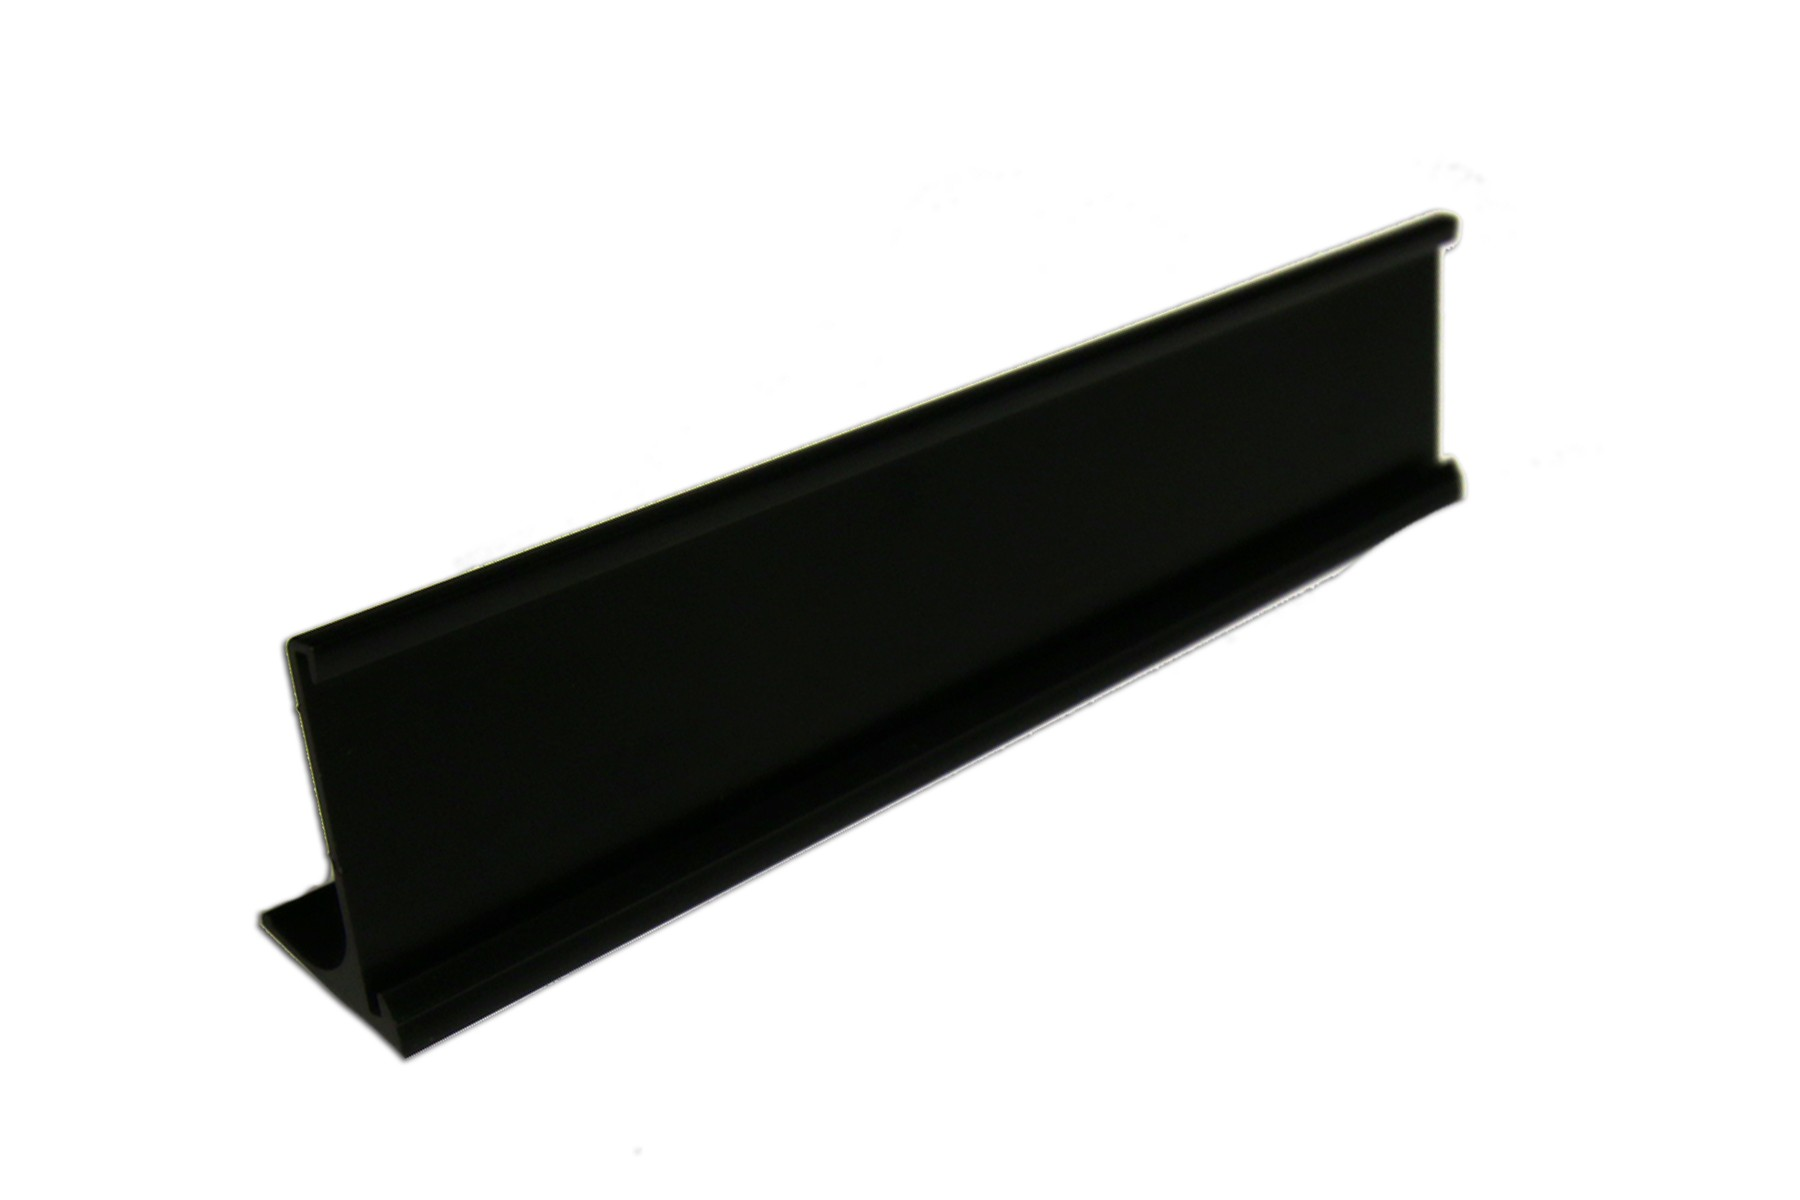 "1 1/2"" x 1/16"" x 8"" Desk Holder, Black"